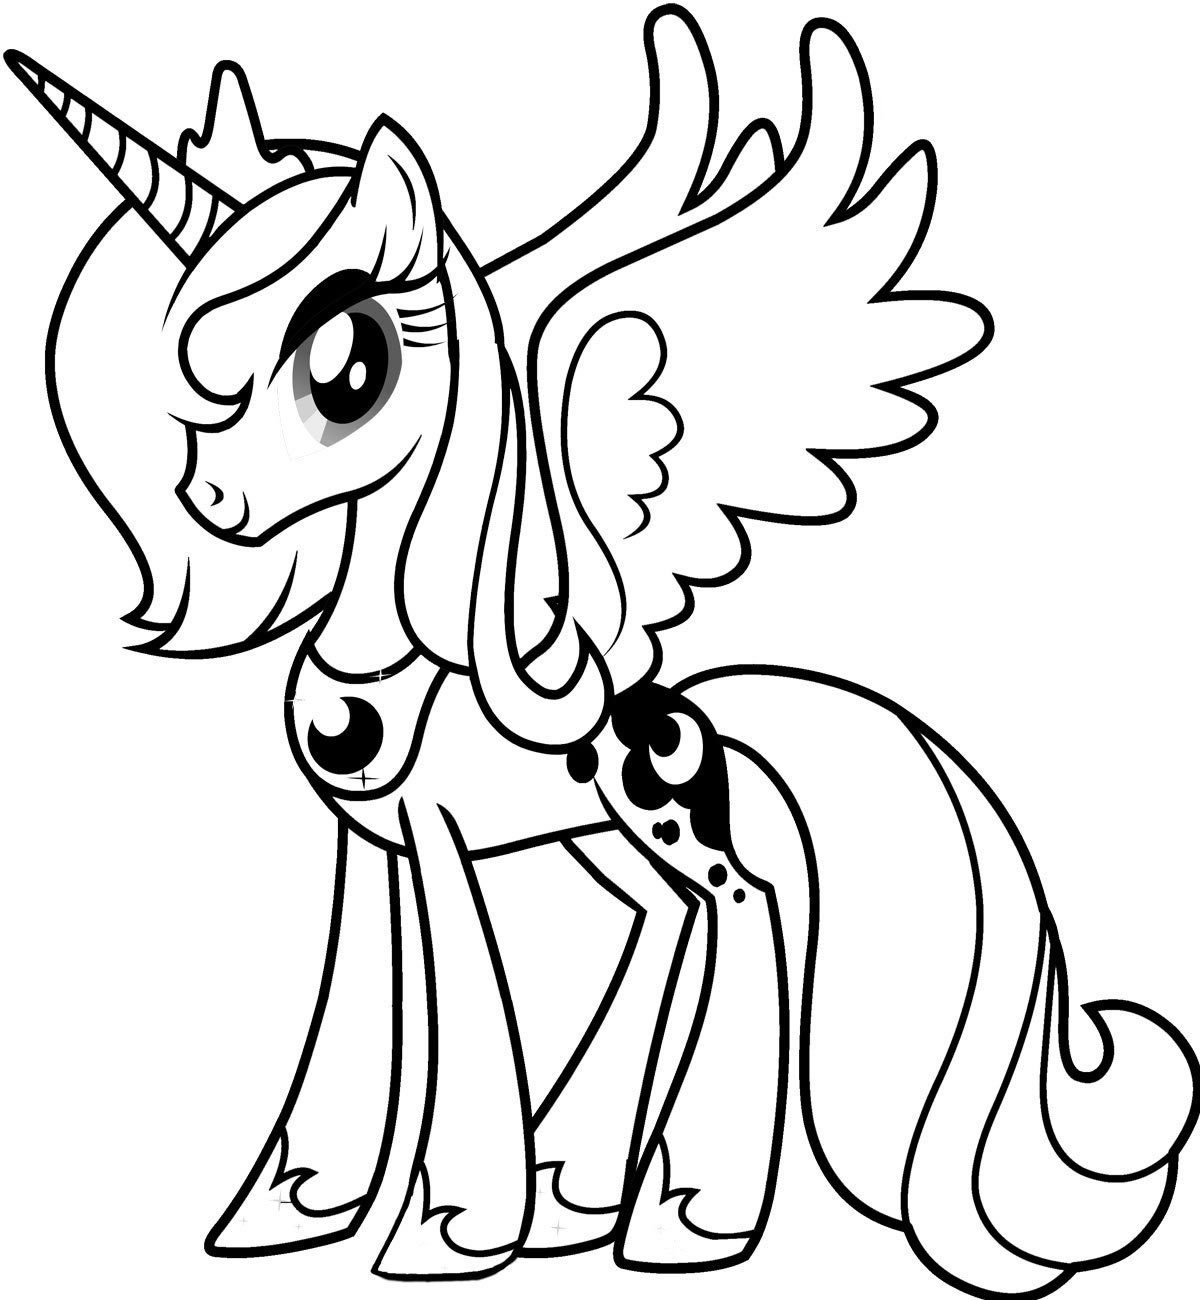 coloring pages mlp Free Printable My Little Pony Coloring Pages For Kids coloring pages mlp